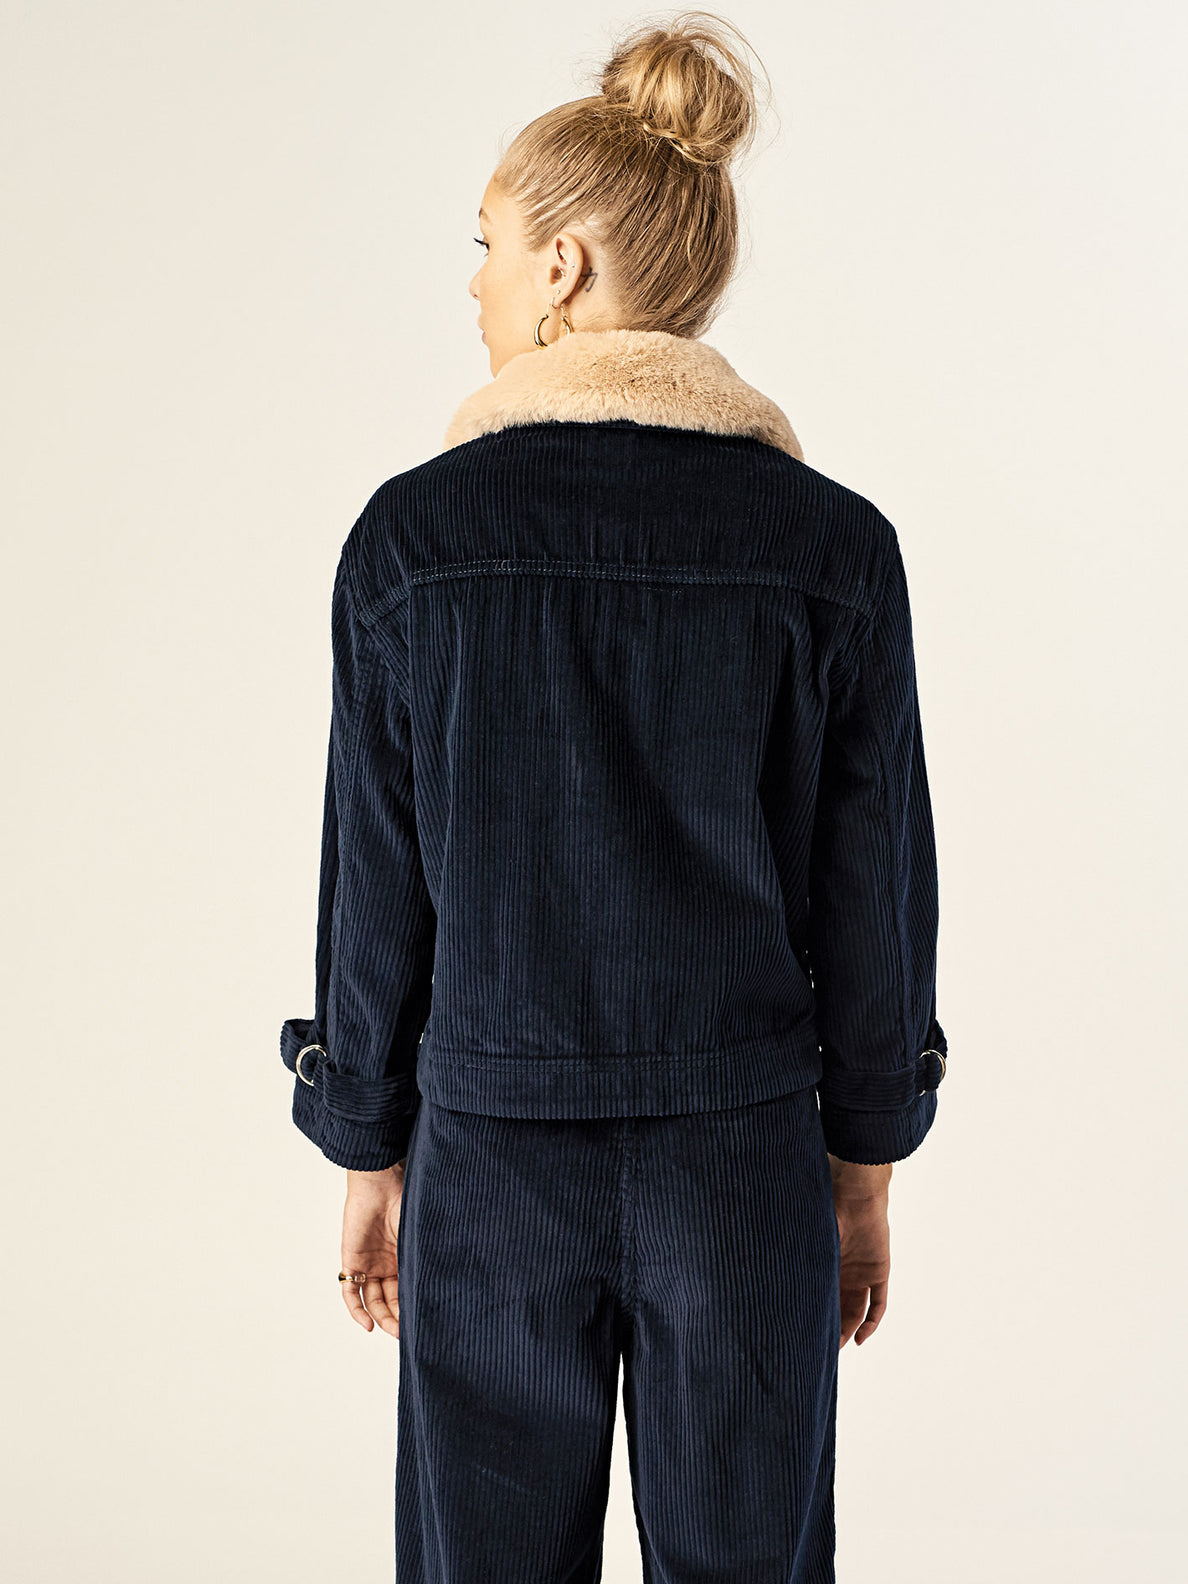 Cut The Cord Jacket In Sea Navy, Back View